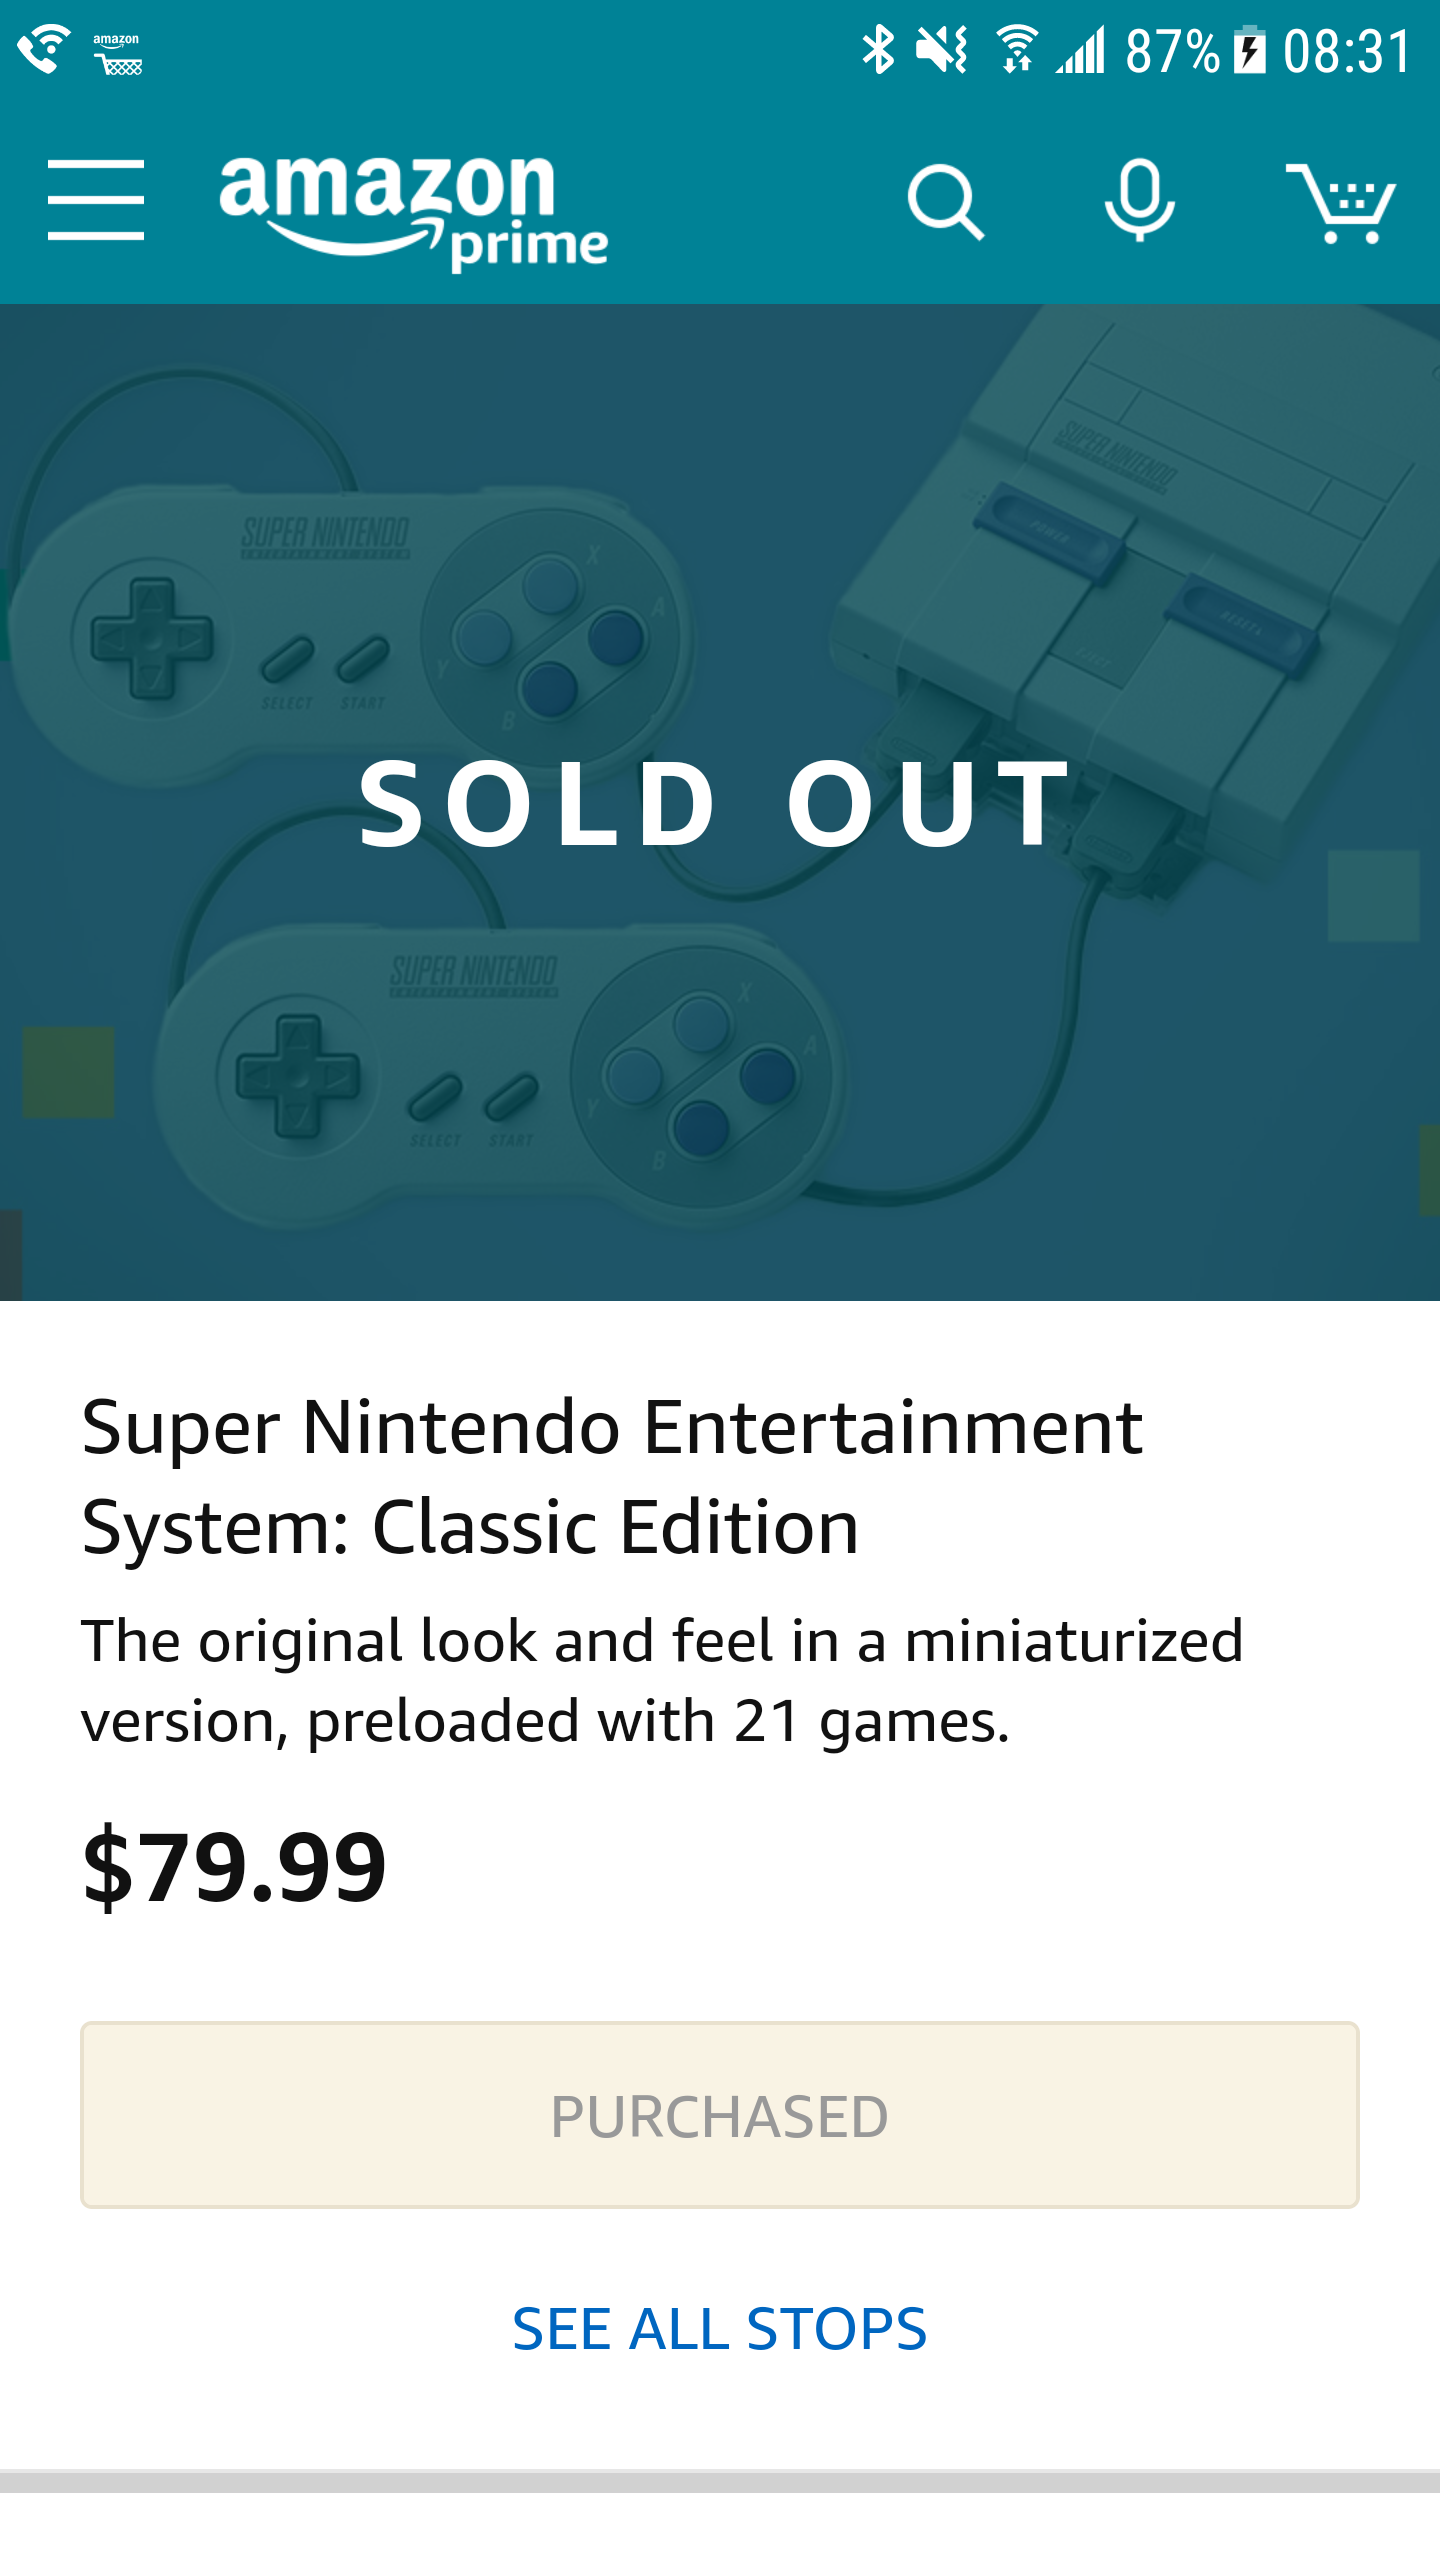 SNES Classic Edition quickly sold out this morning at the Amazon Treasure Truck